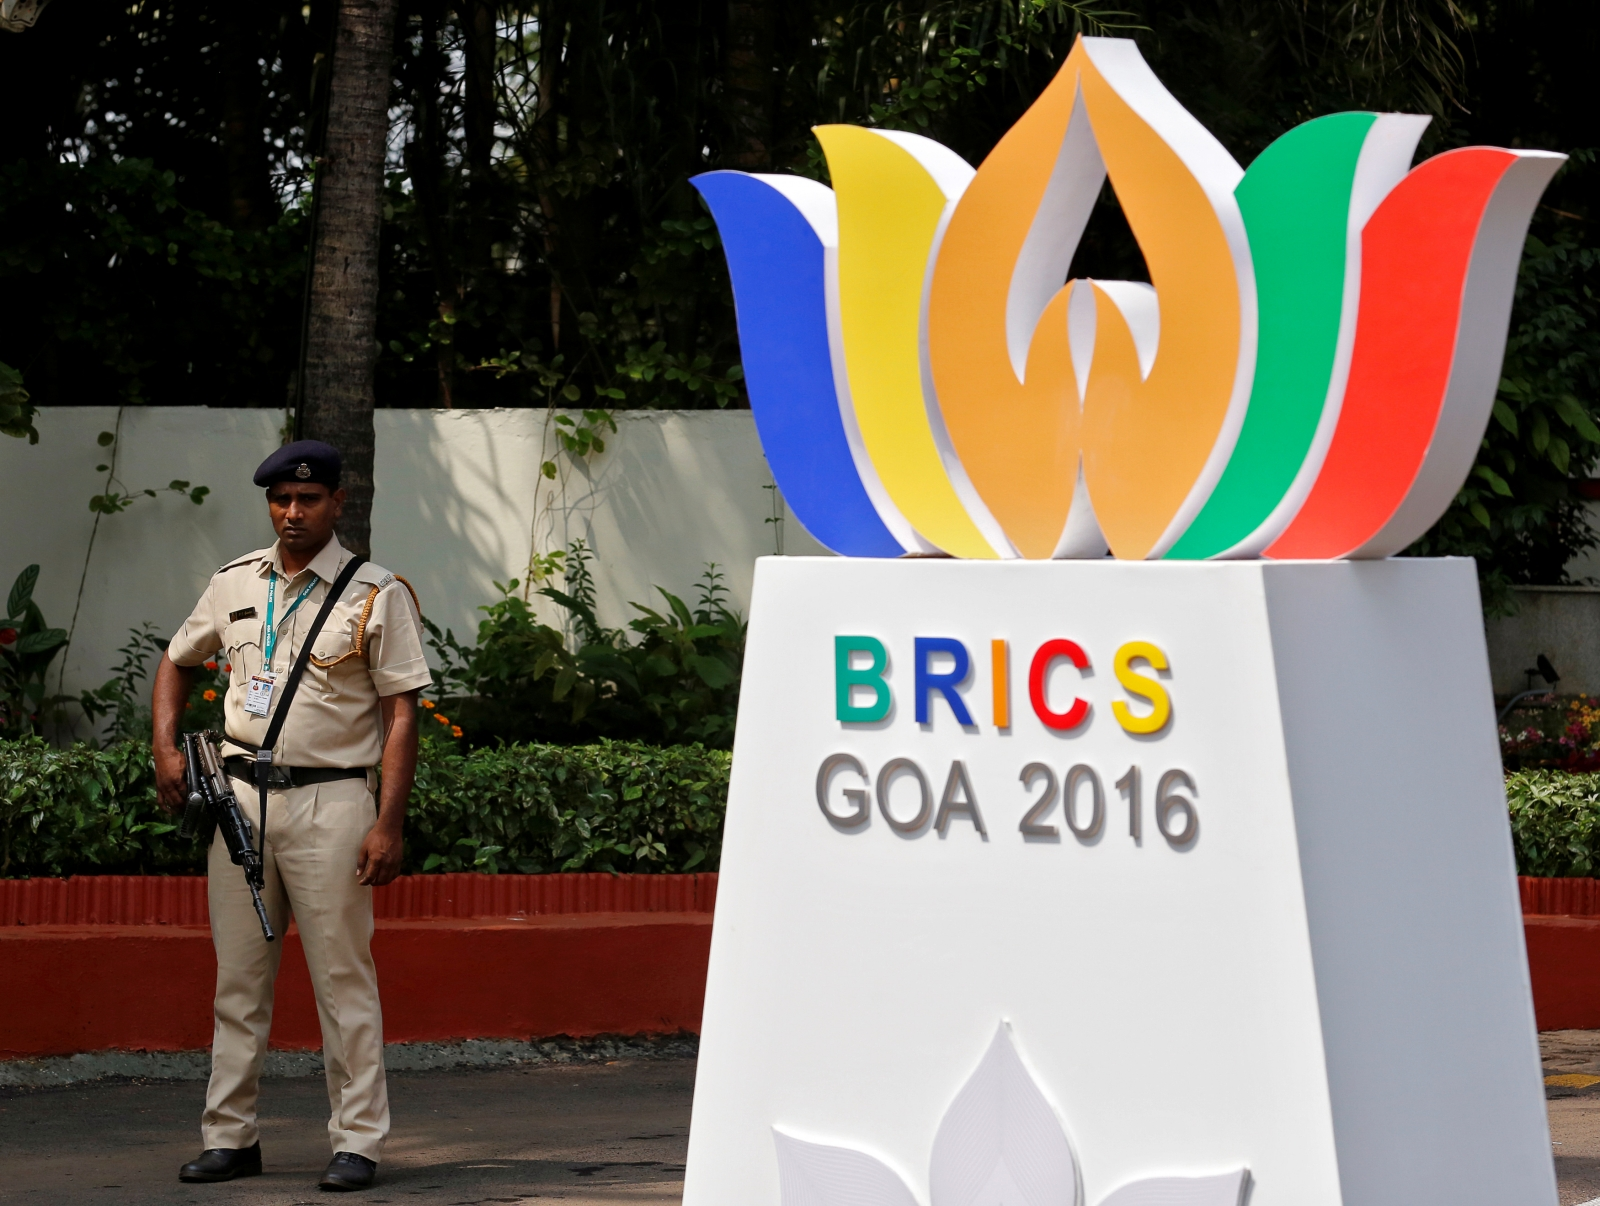 With individual economies performing very well, BRICS is poised to play a major role in shaping international trade and politics. (Image: International Business Times)